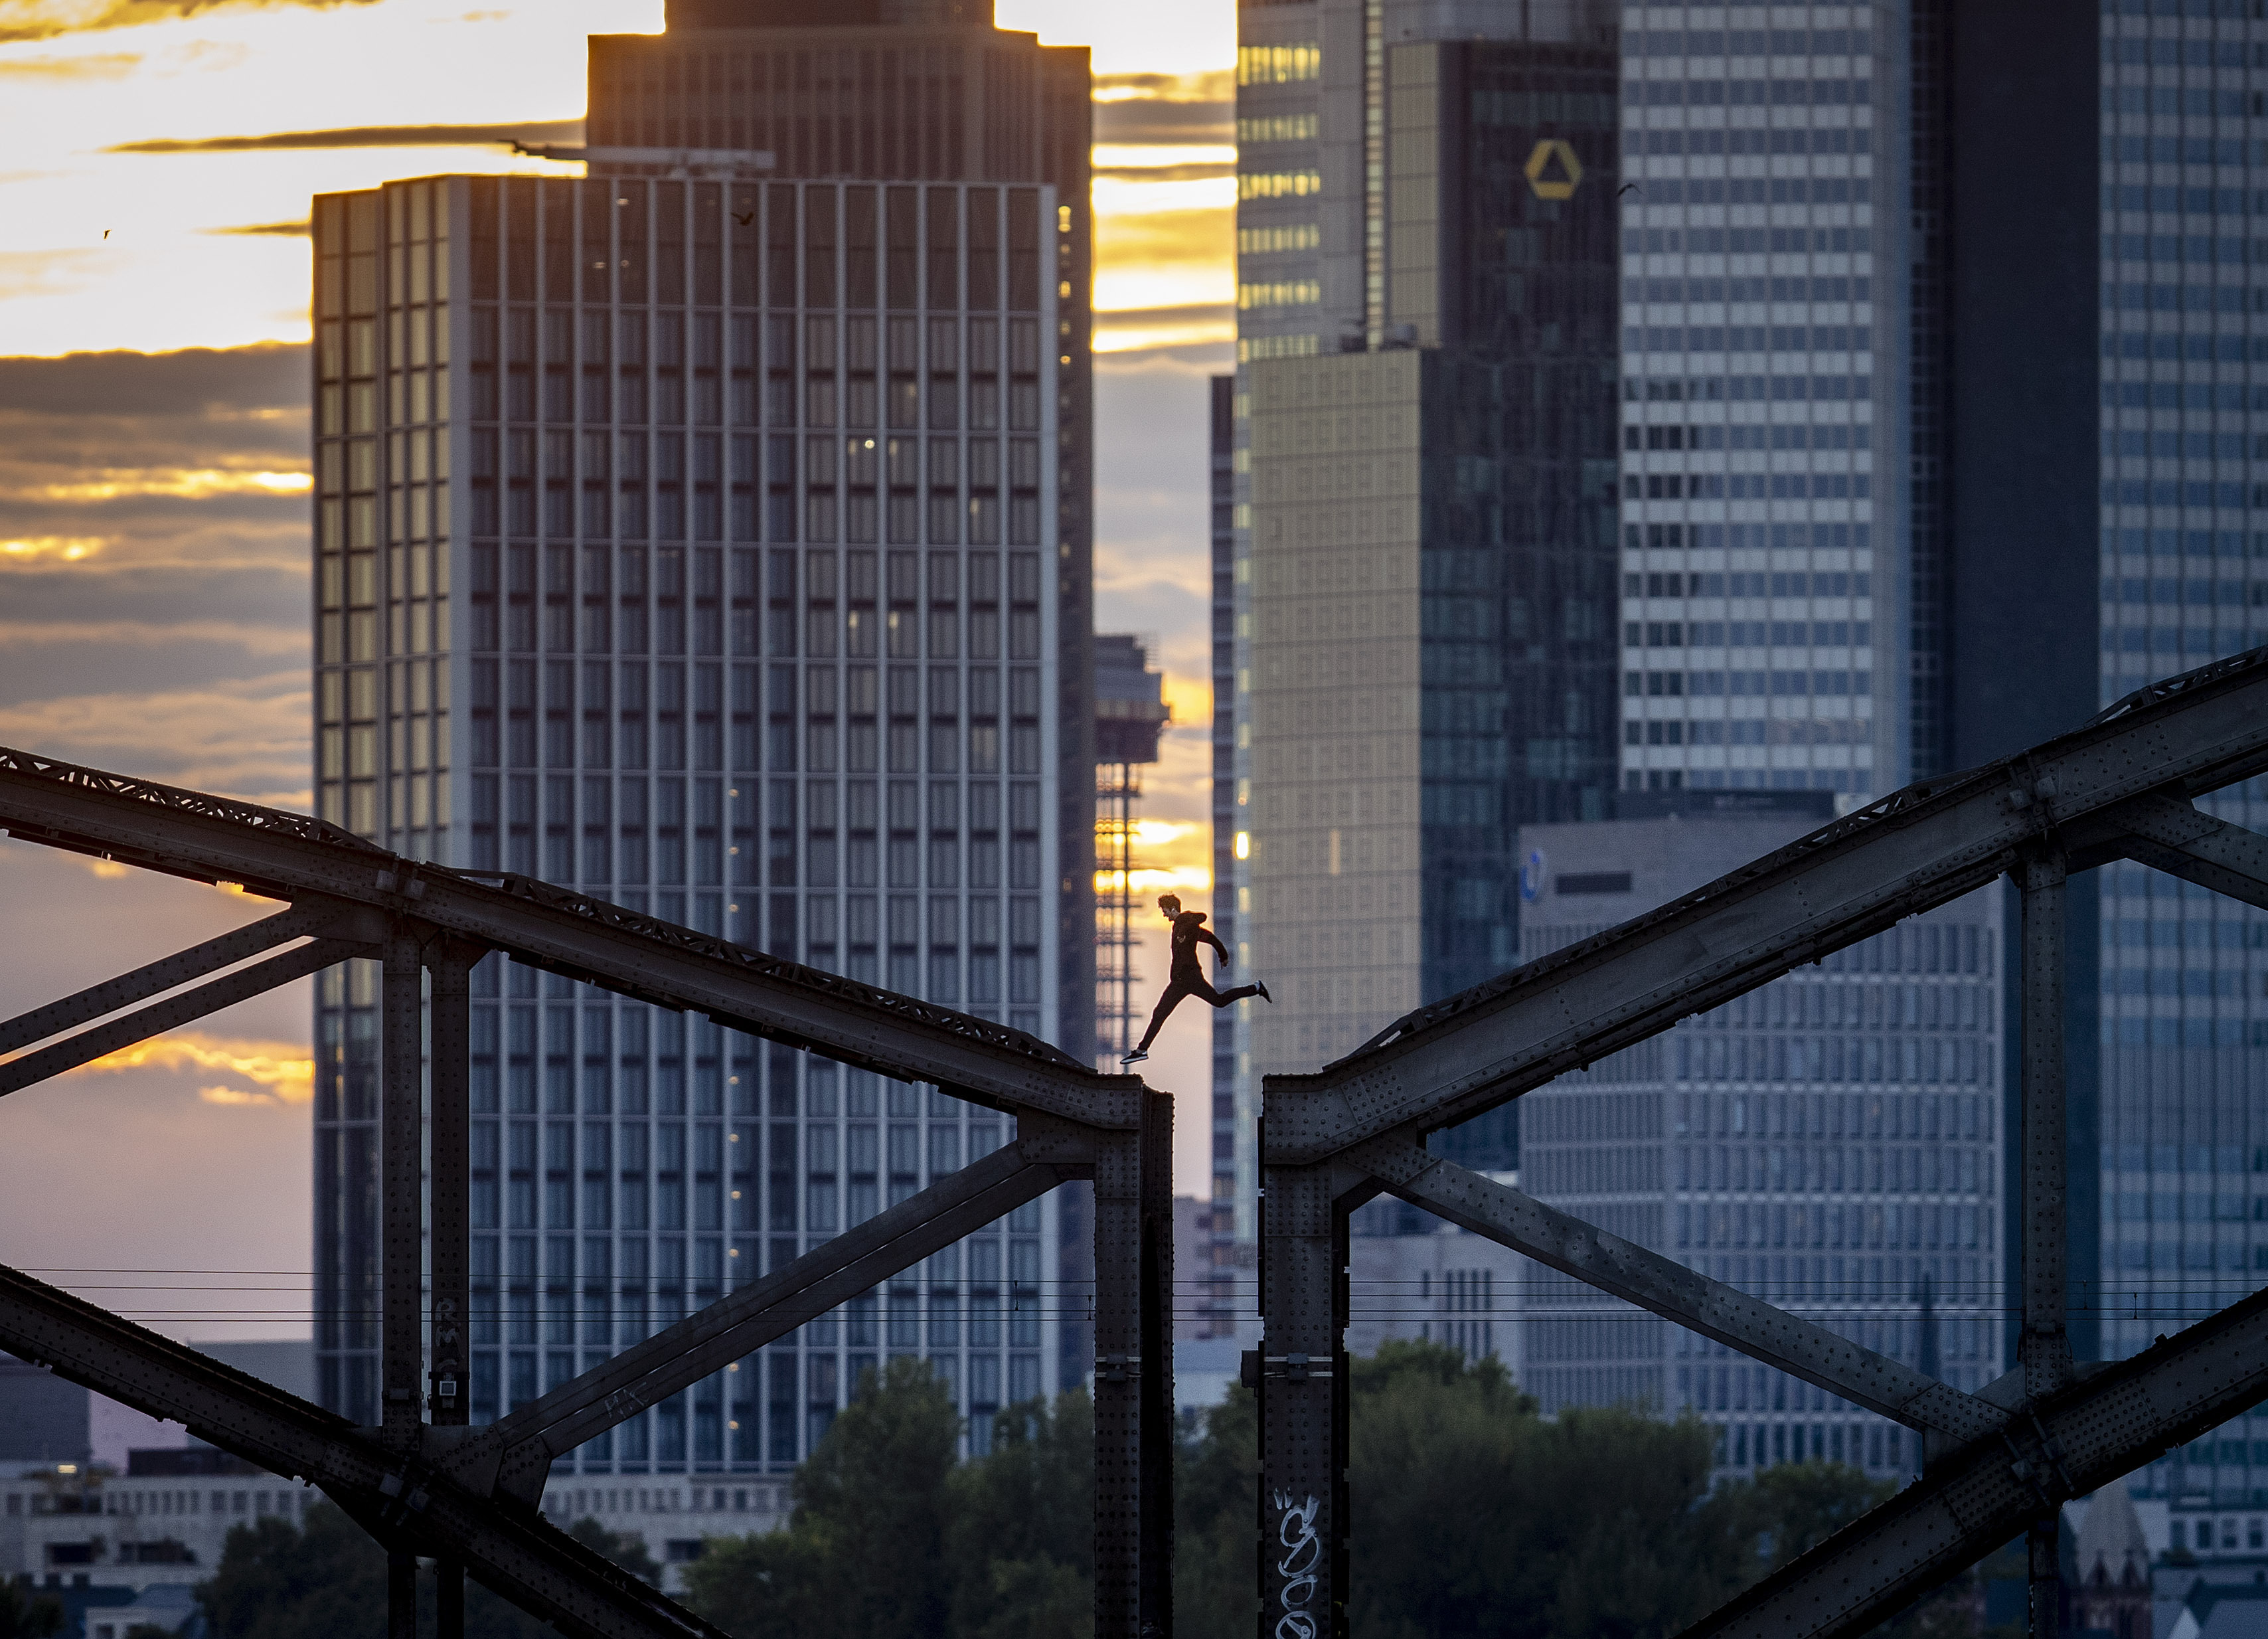 A parkour runner jumps on a railway bridge with the buildings of the banking district in background in Frankfurt, Germany, Wednesday, Sept. 9, 2020. (AP Photo/Michael Probst)